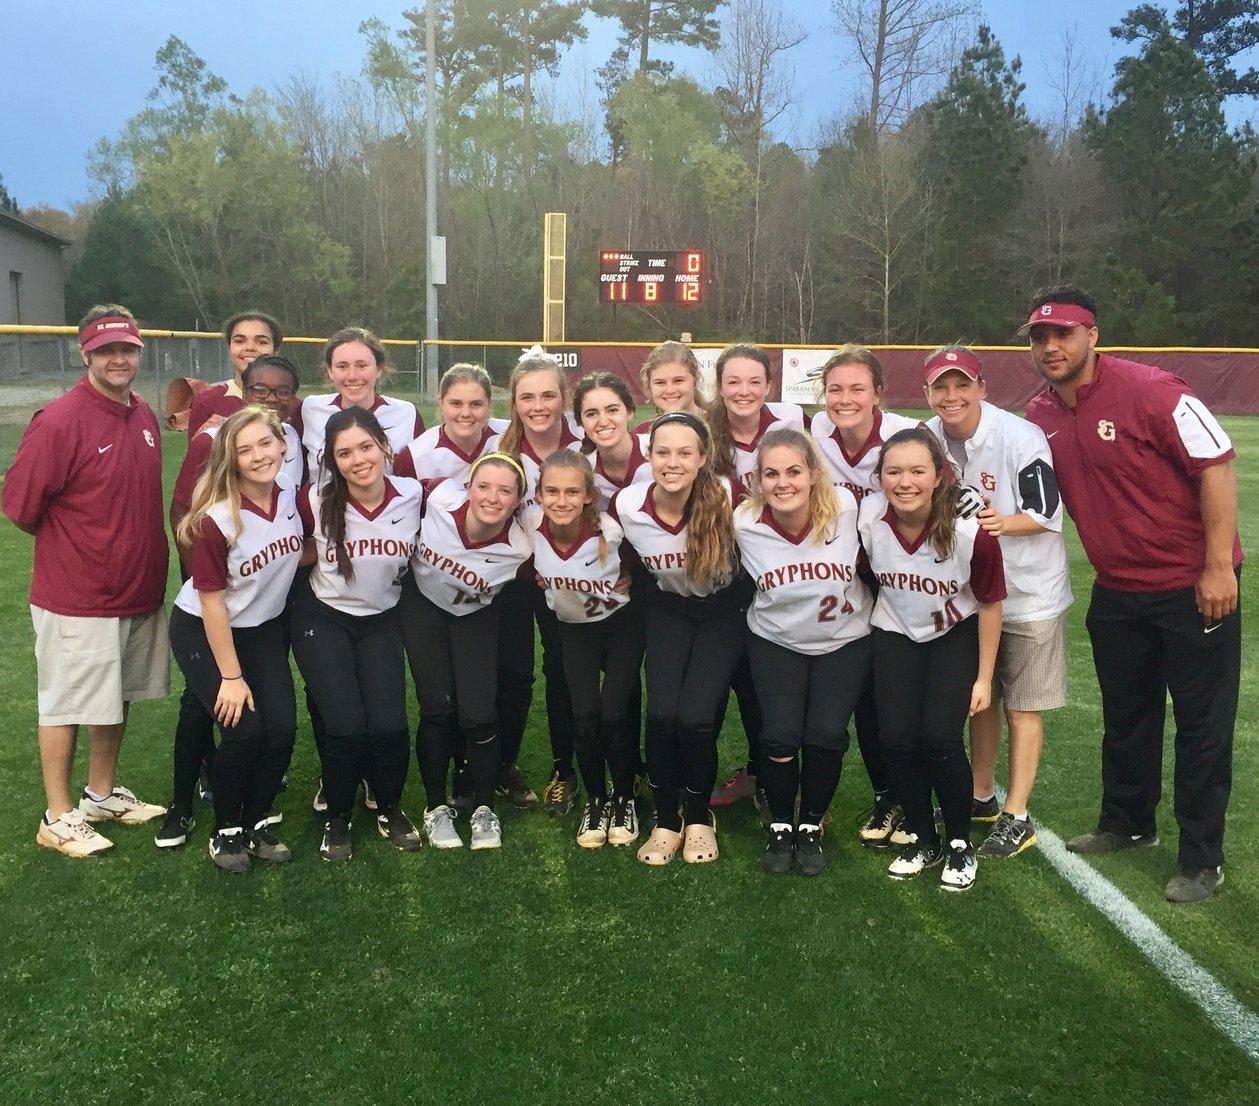 The softball team poses in front of the scoreboard after winning their game against the St. Agnes Stars. The 12-11 win was their first win of the season.